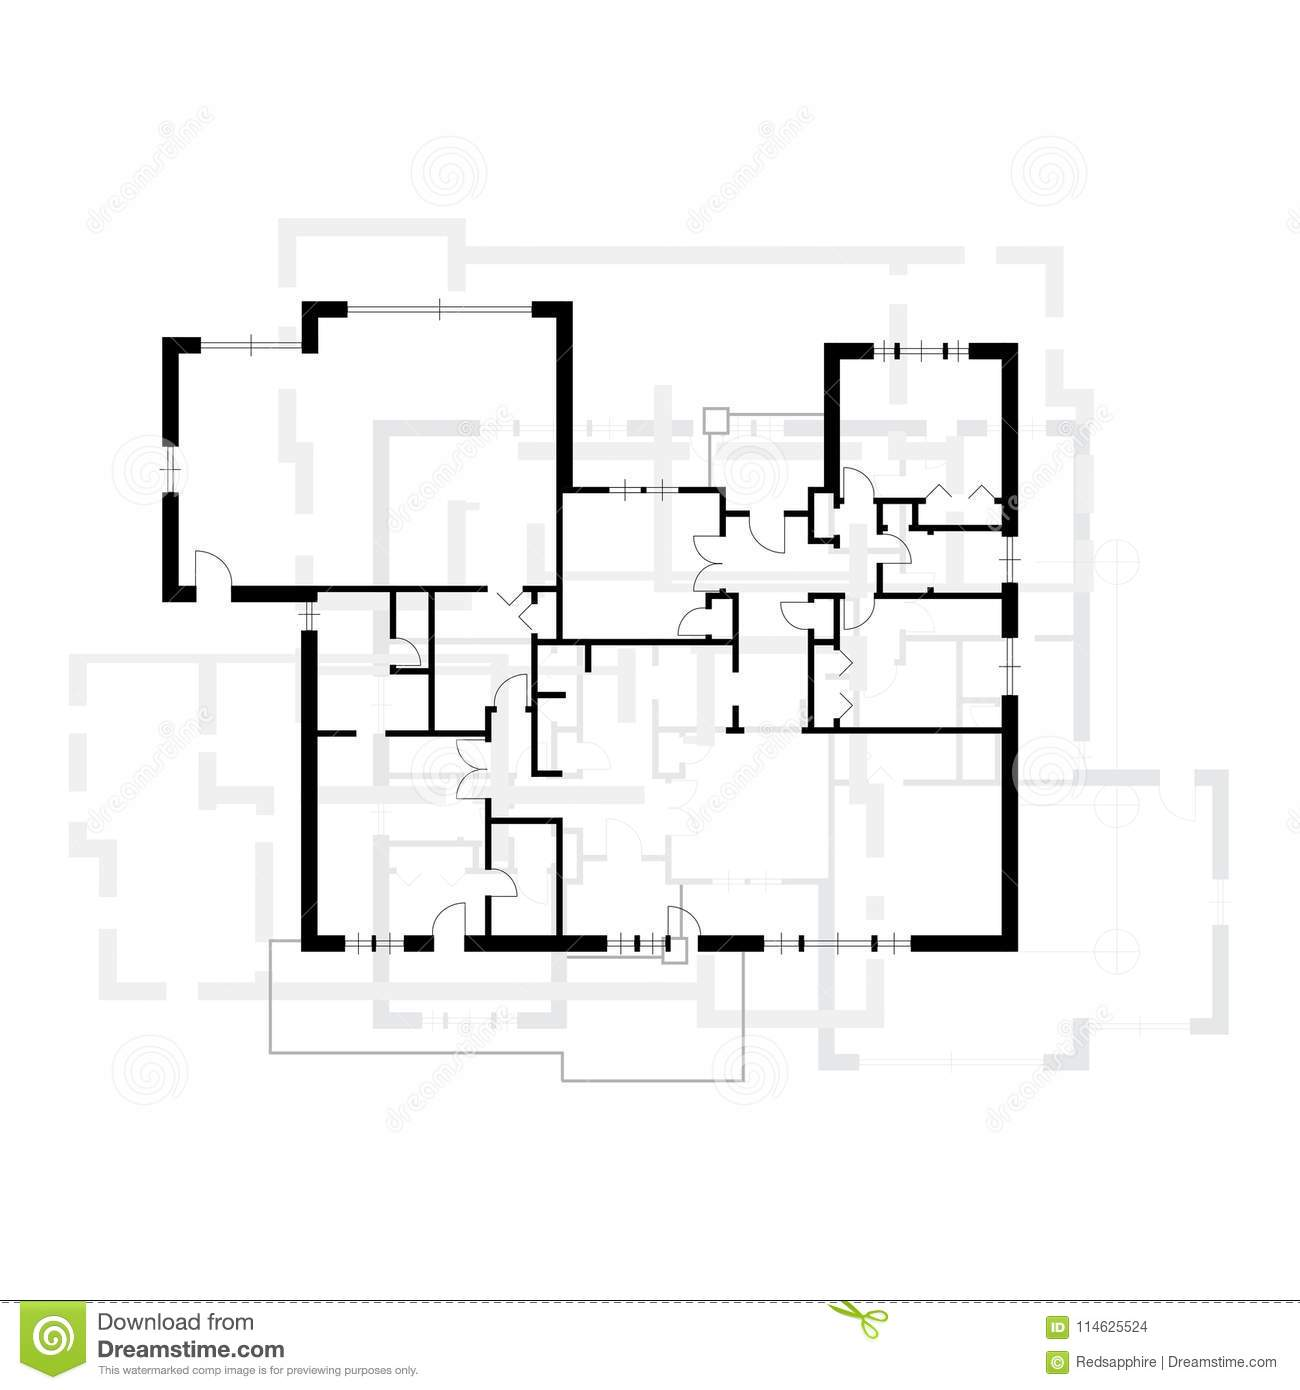 Faire Un Plan D'appartement Plan D Appartement